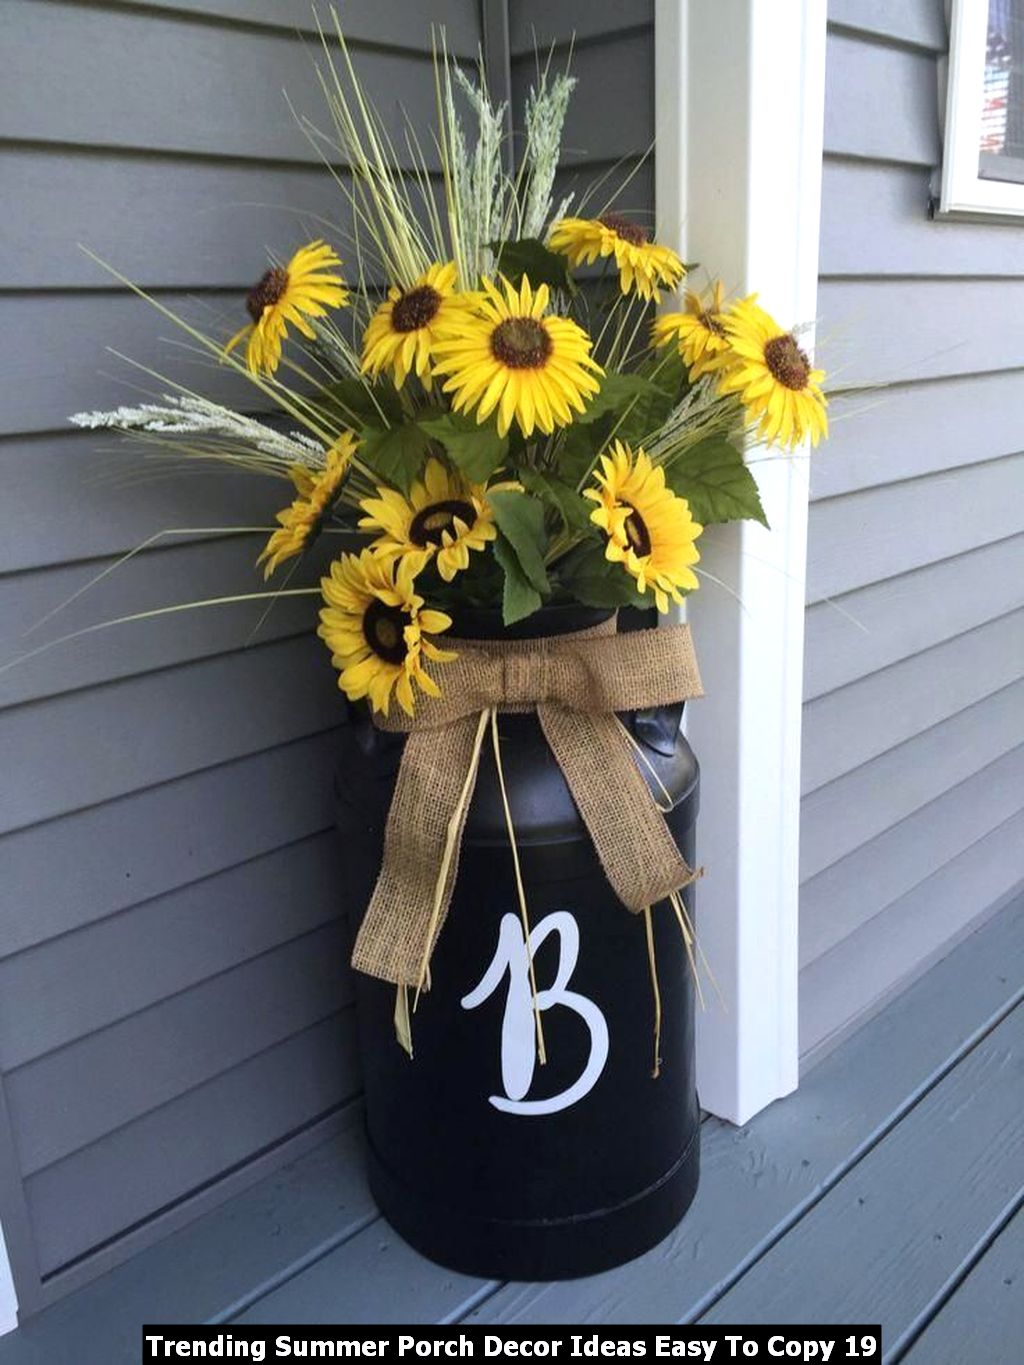 Trending Summer Porch Decor Ideas Easy To Copy 19